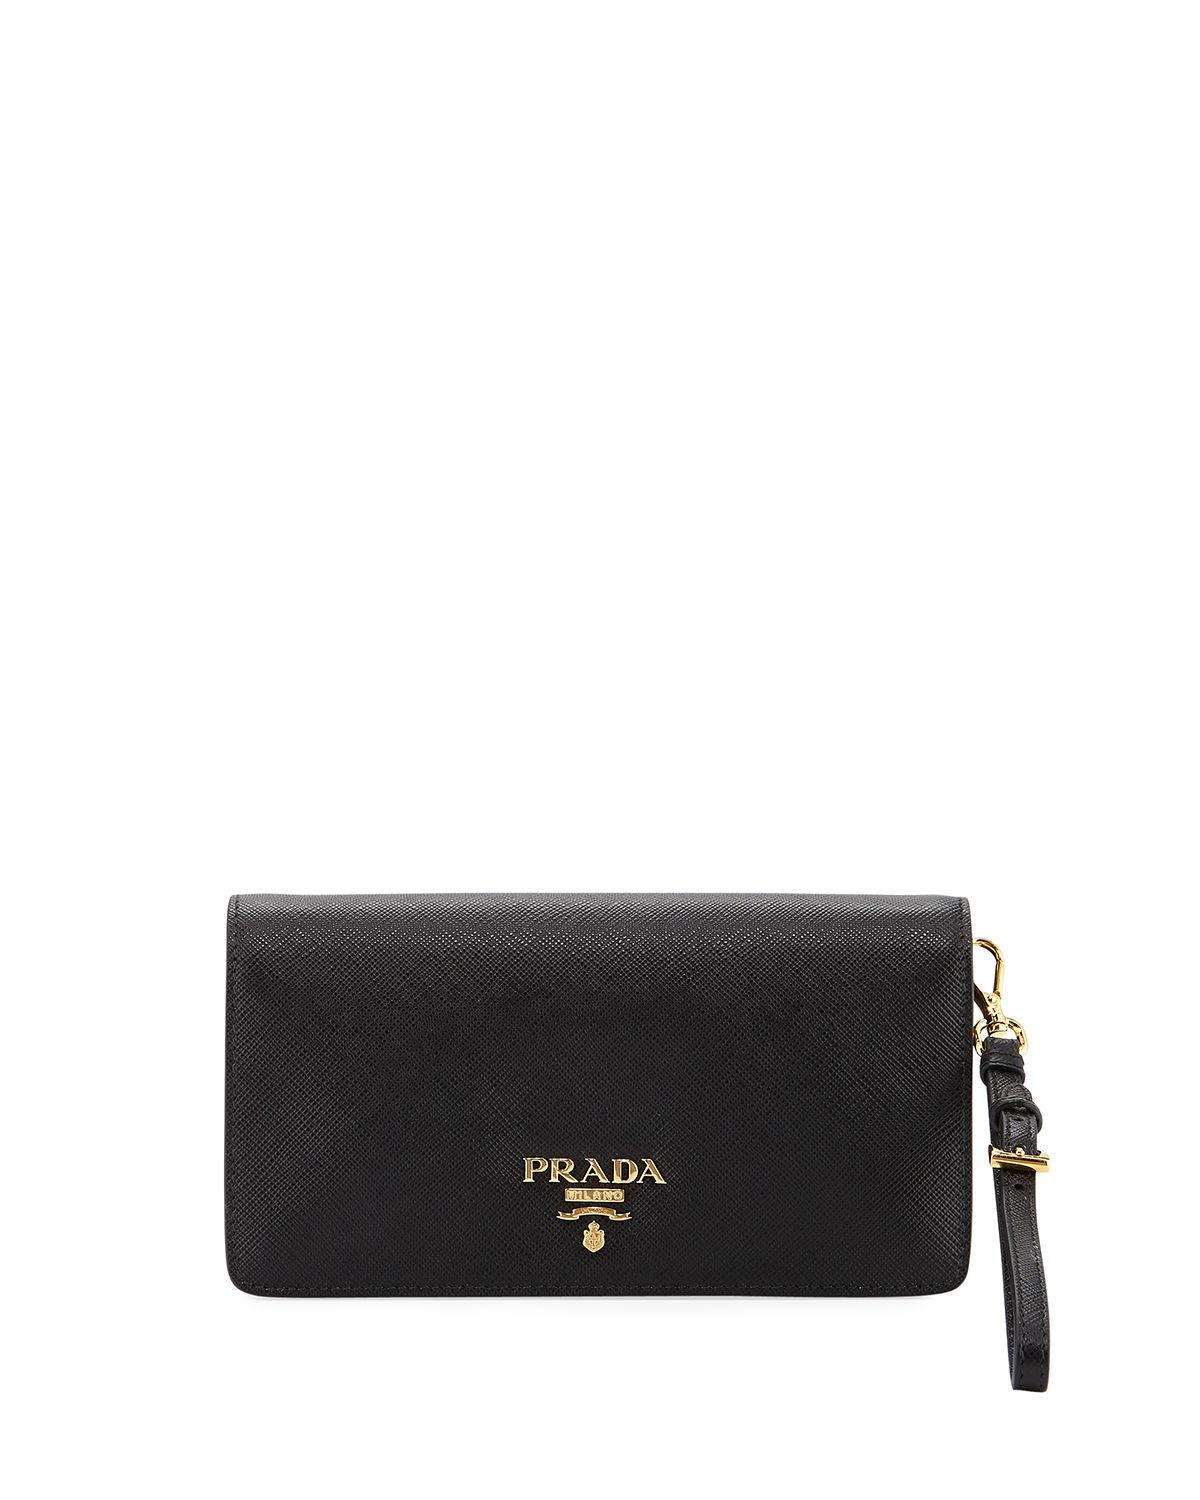 8a61bfbef8ec ... best price prada black saffiano mini flap tech crossbody bag lyst. view  fullscreen 12210 2c251